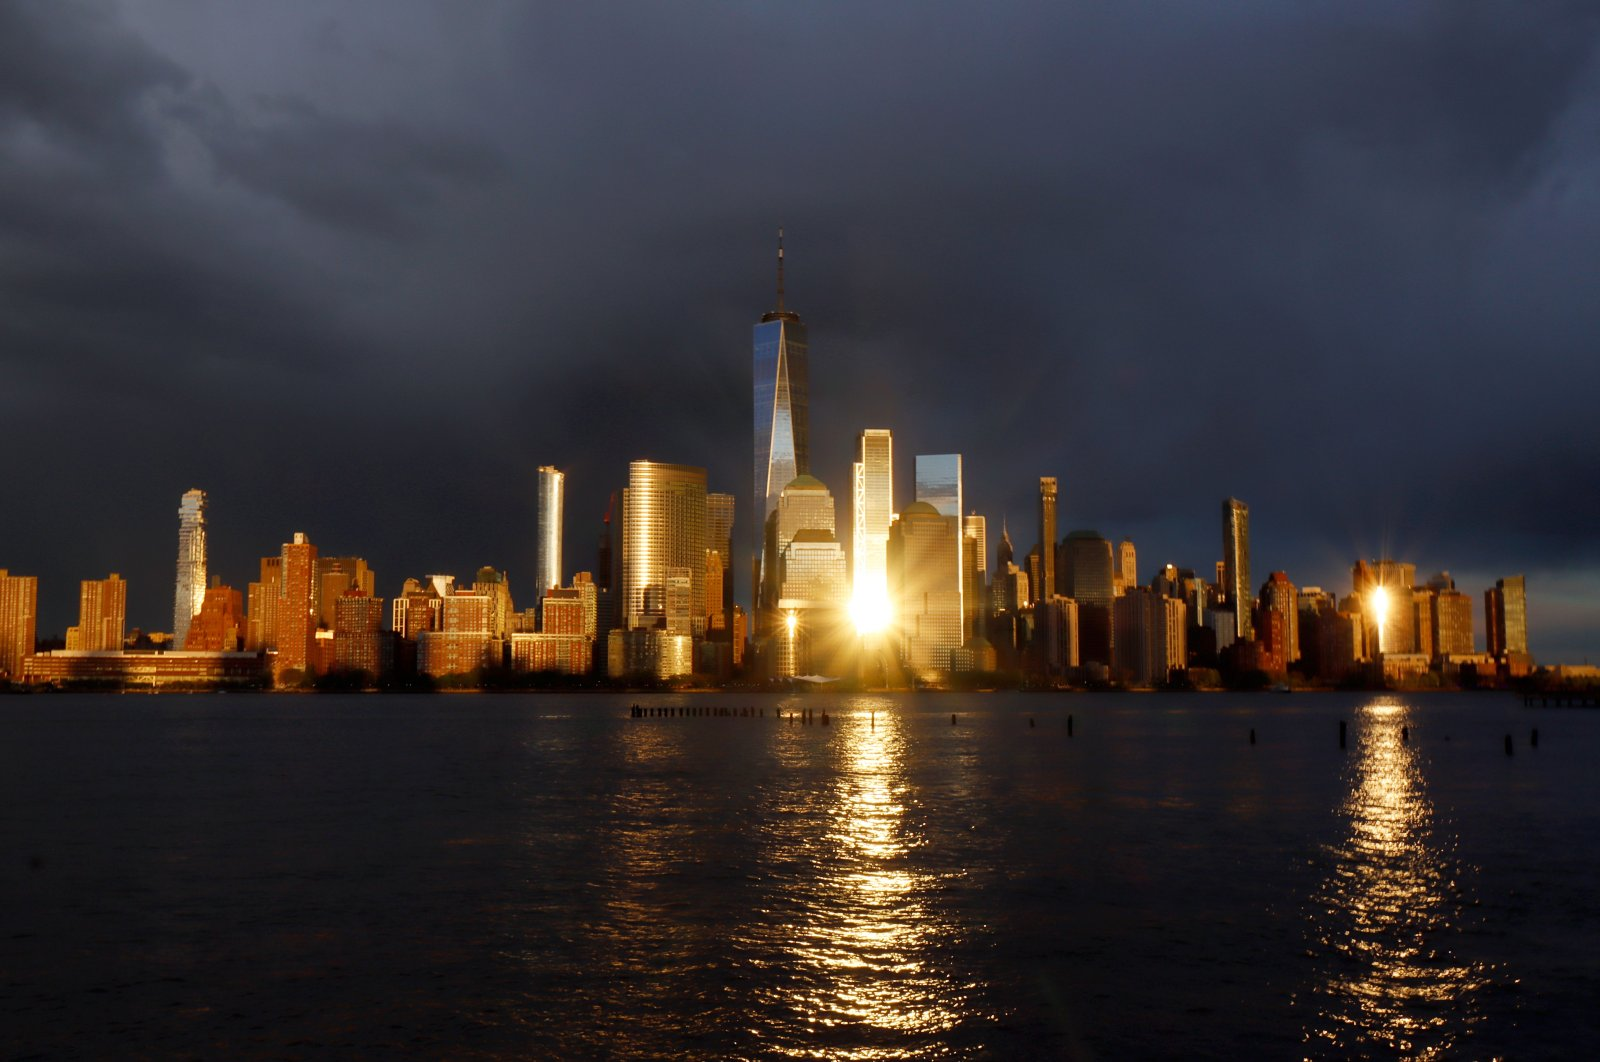 Rain clouds are seen along the skyline of lower Manhattan and the One World Trade Center as the sun sets in New York City, U.S., April 30, 2021. (Photo by Getty Images)